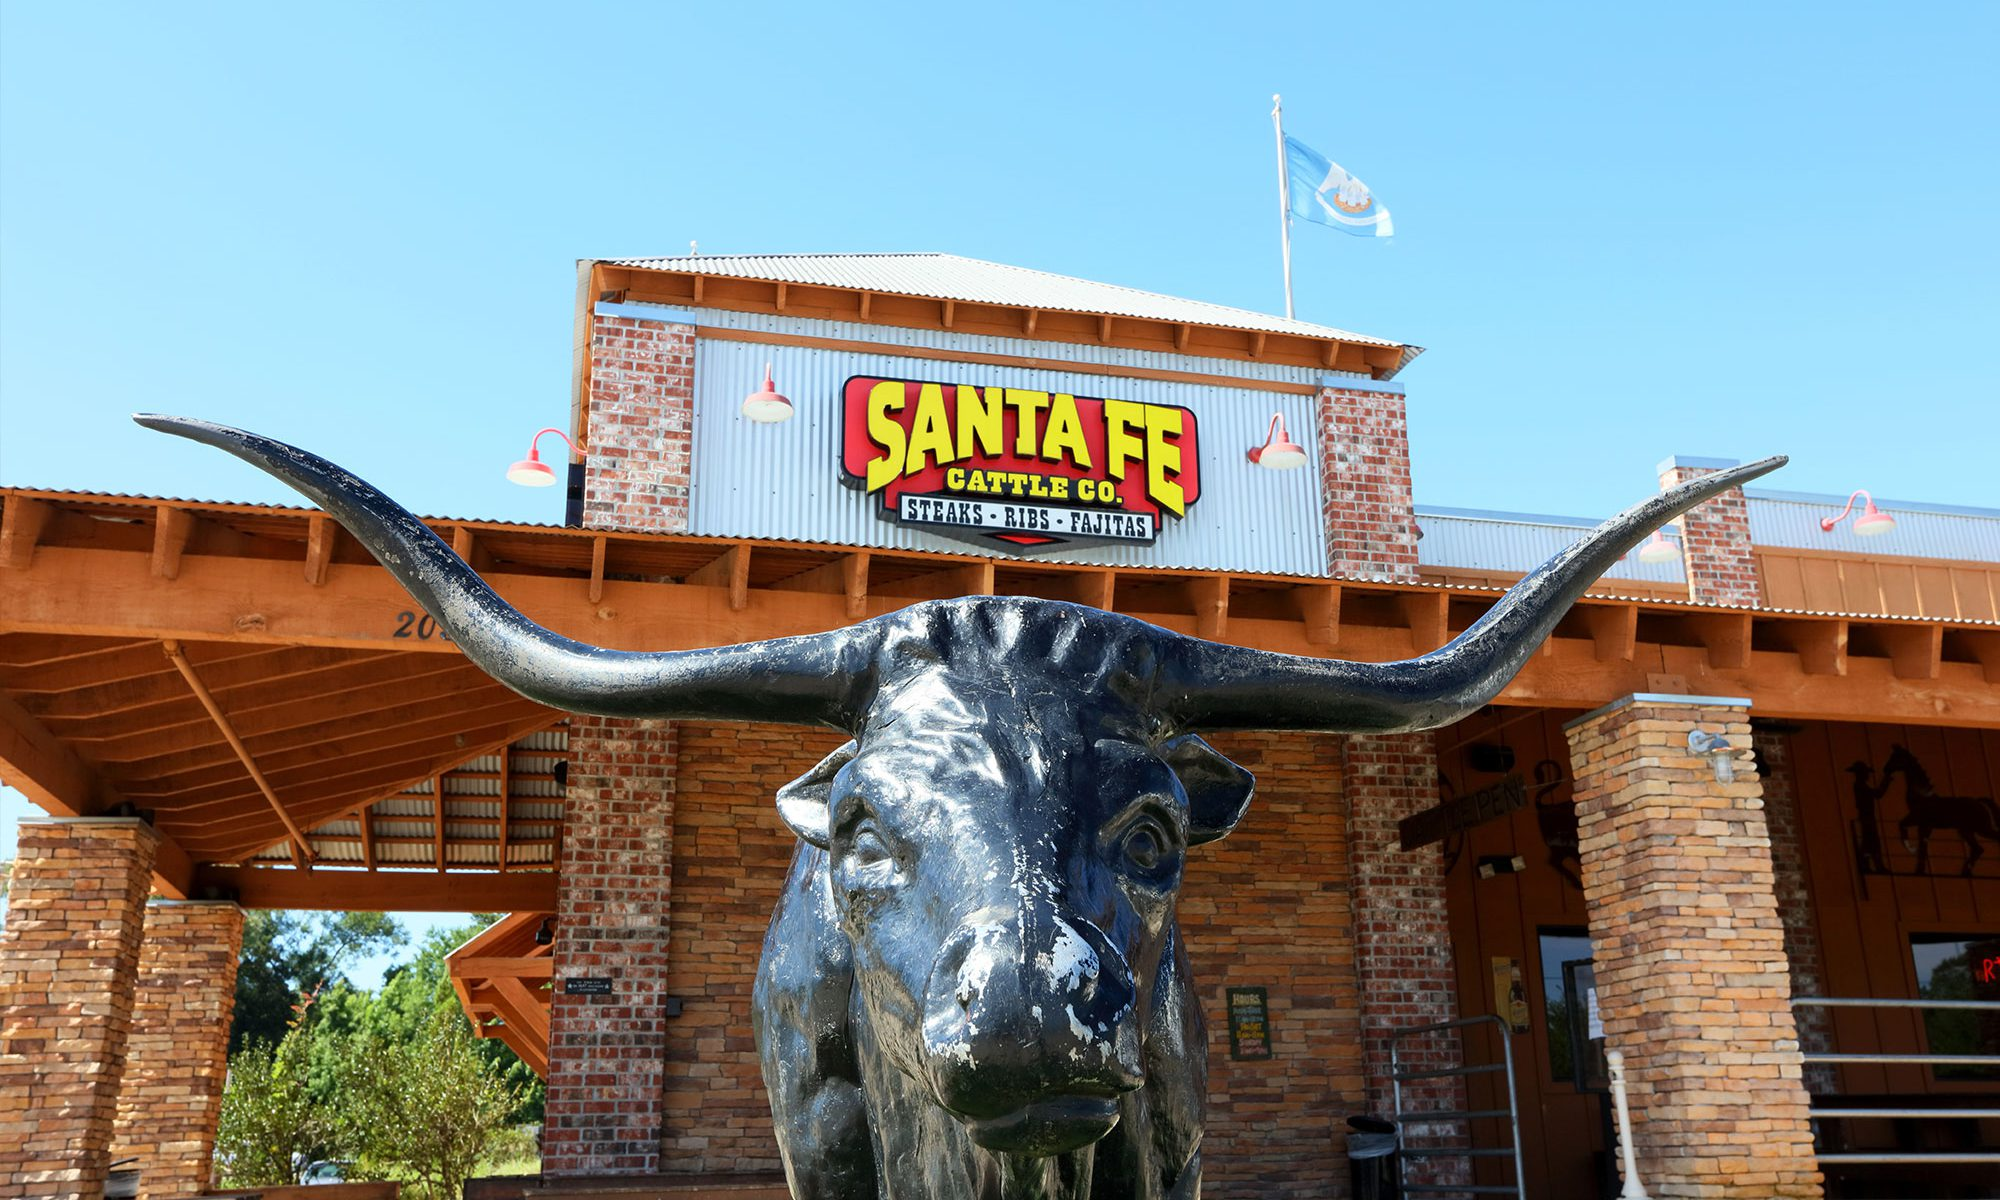 Santa Fe Cattle Co.